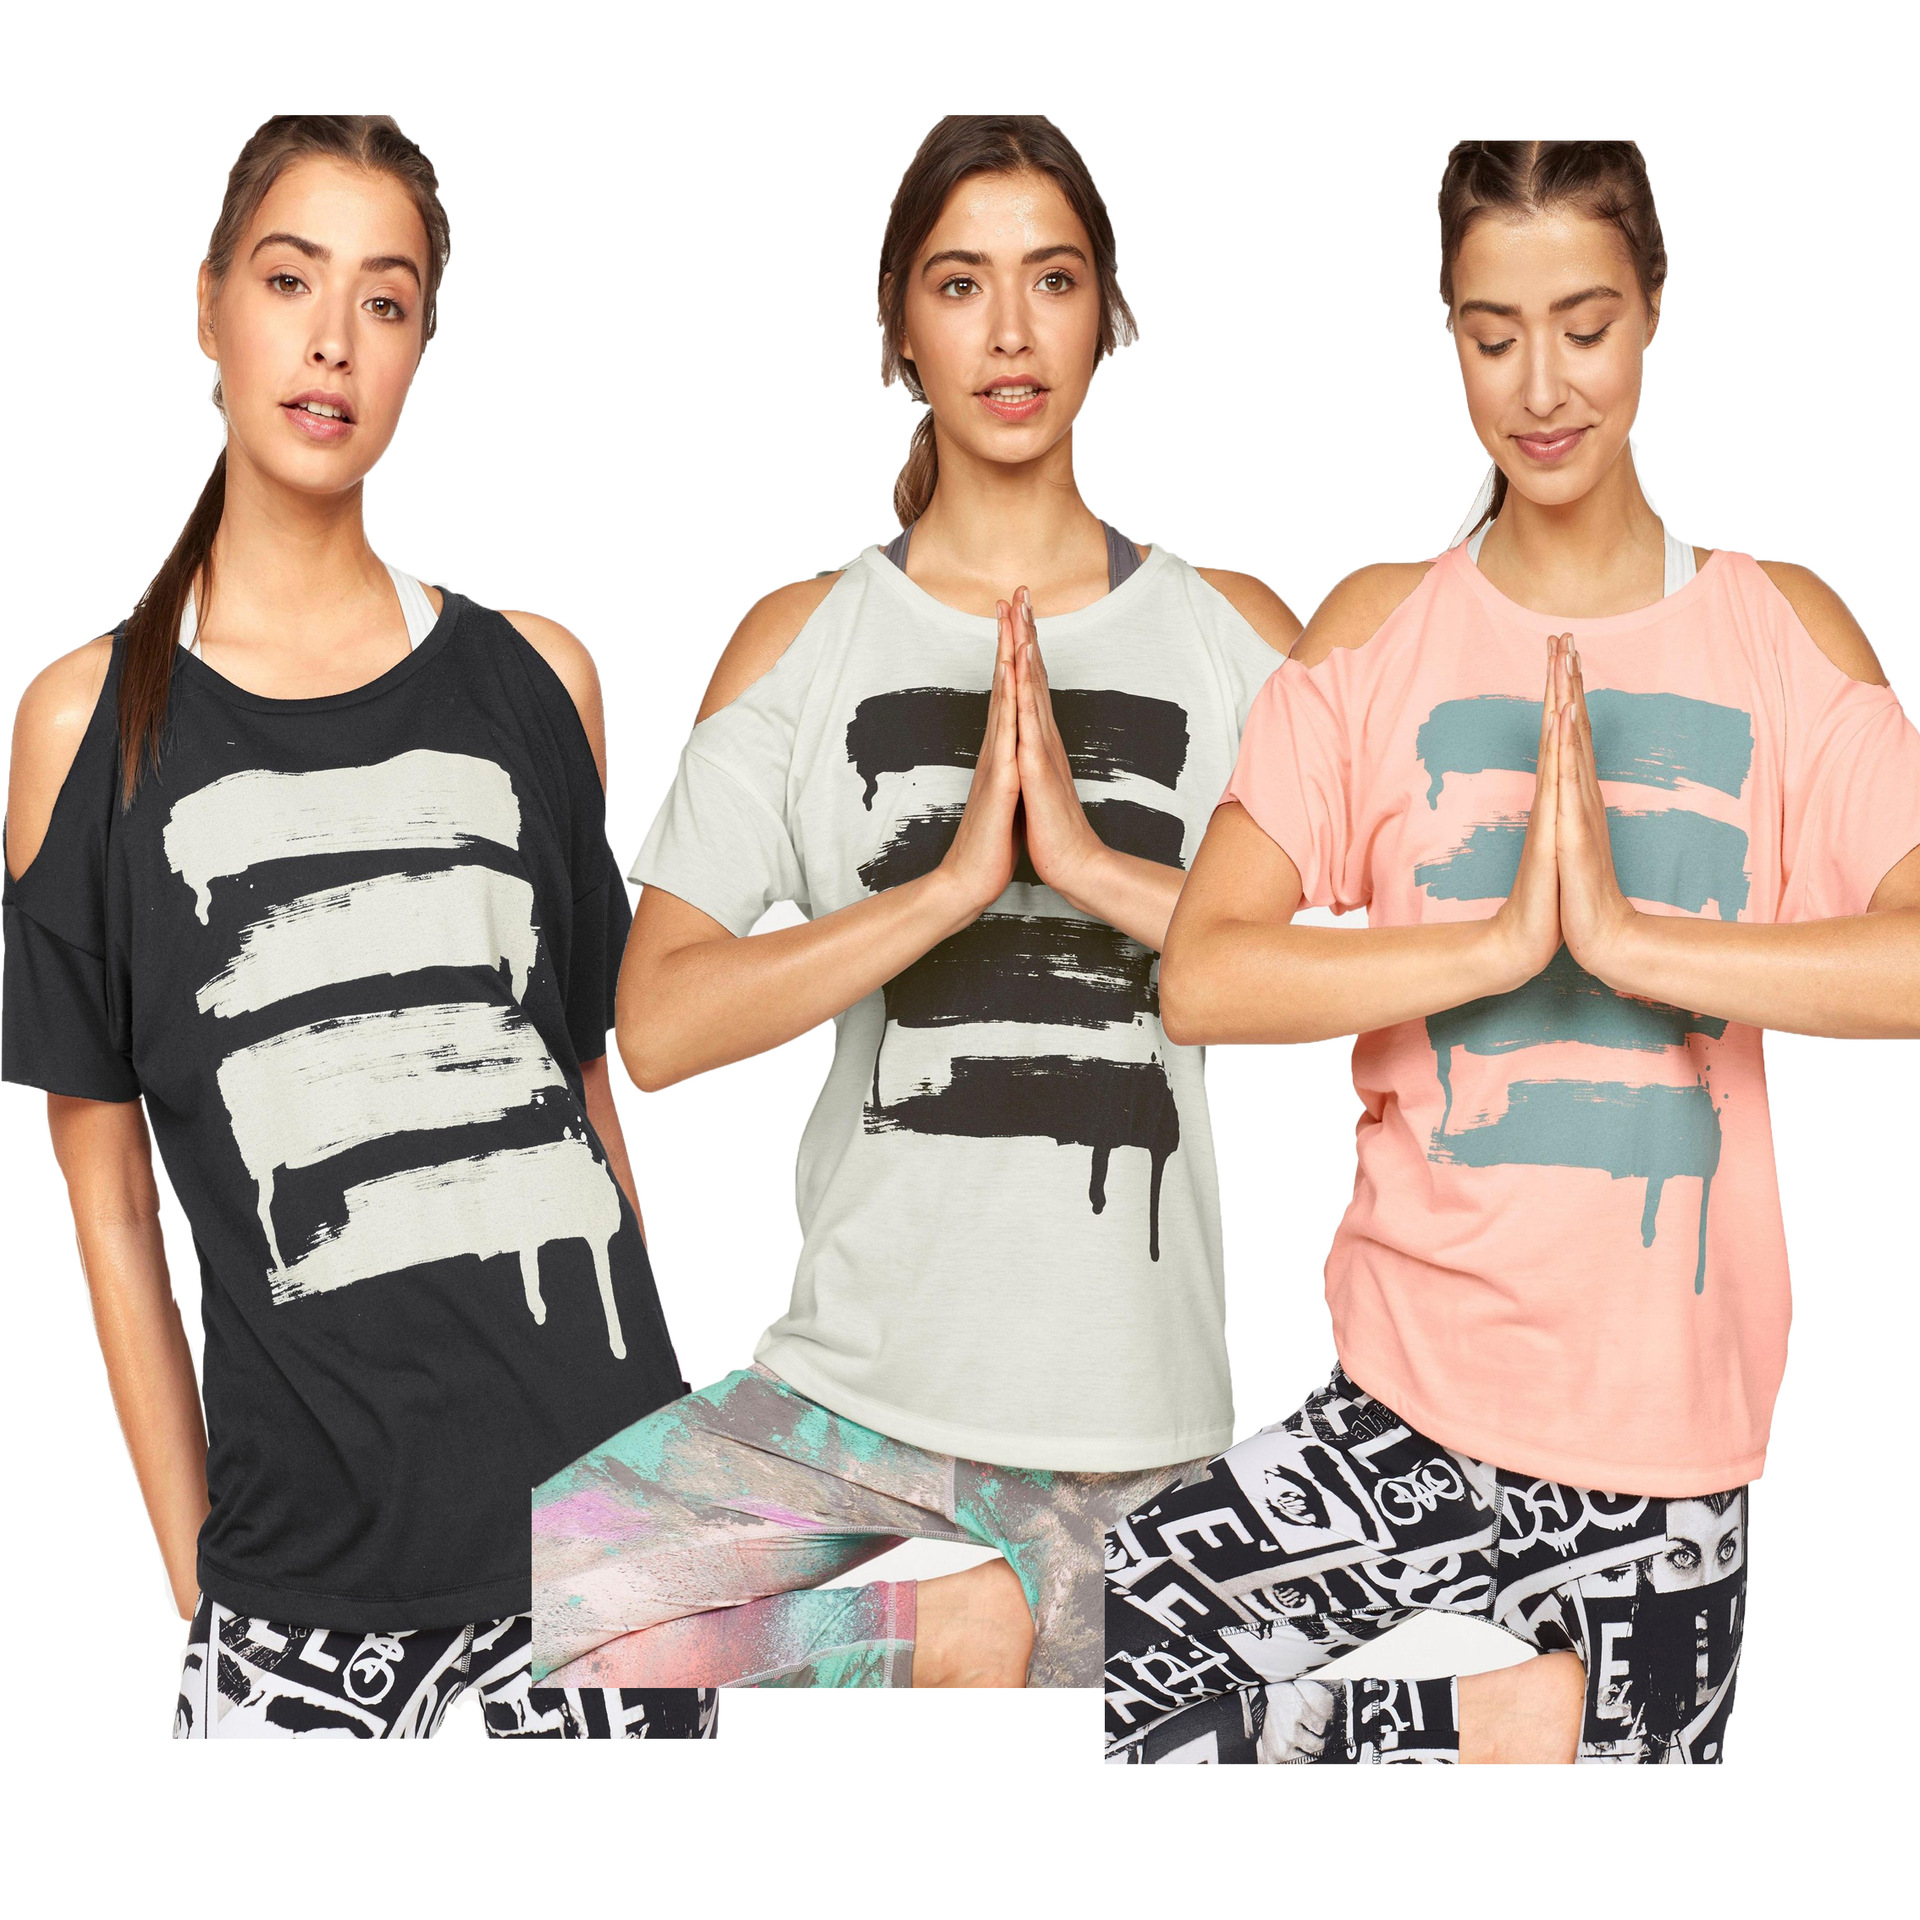 Black White Quick Dry Translucent Mesh Short Sleeve T Shirt Yoga Bra Sport Jaring 8738 Sexy Off Shoulder Top Pink Loose Shirts Women Gym Fitness Running Clothing